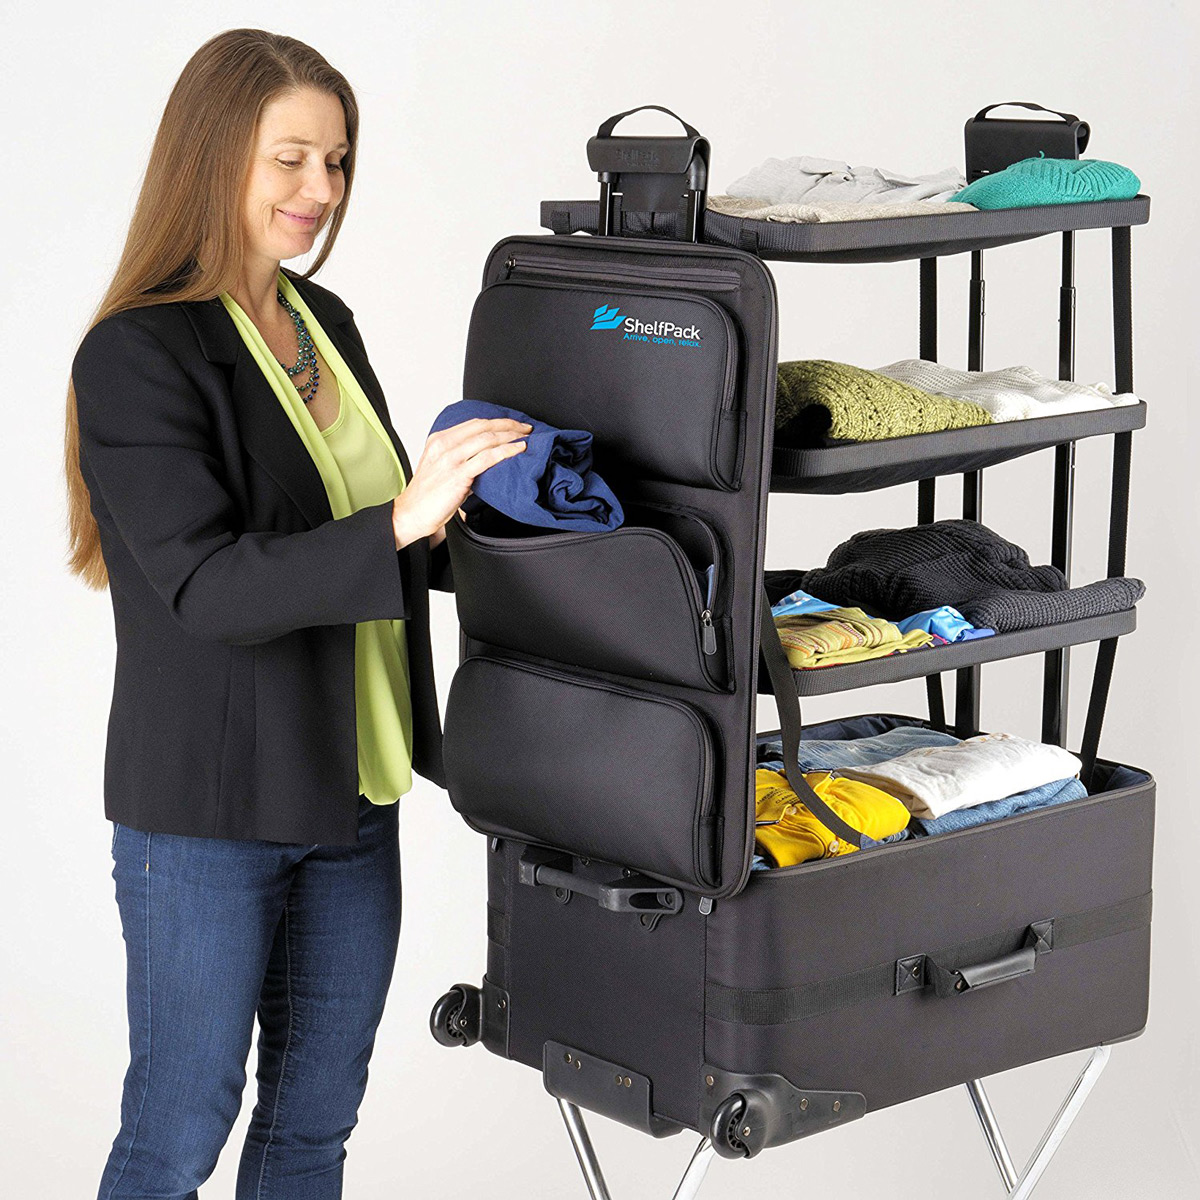 Shelfpack Suitcase With Built In Shelves